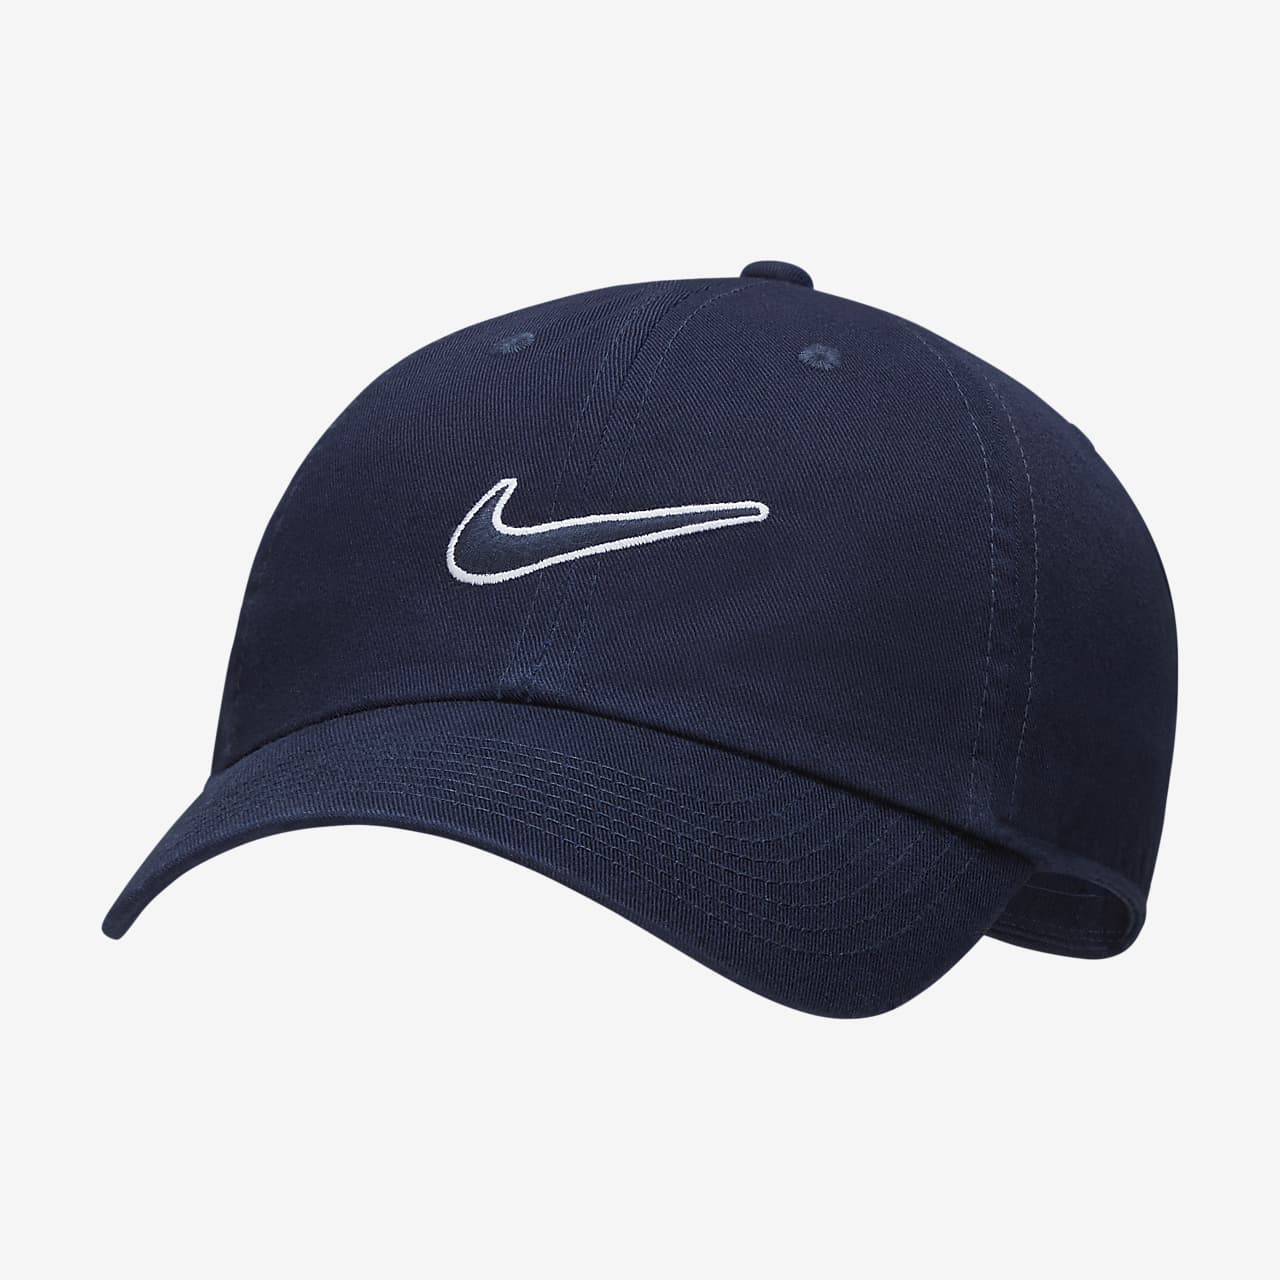 a78412bb70262 Nike Heritage 86 Essential Swoosh Adjustable Hat. Nike.com AU